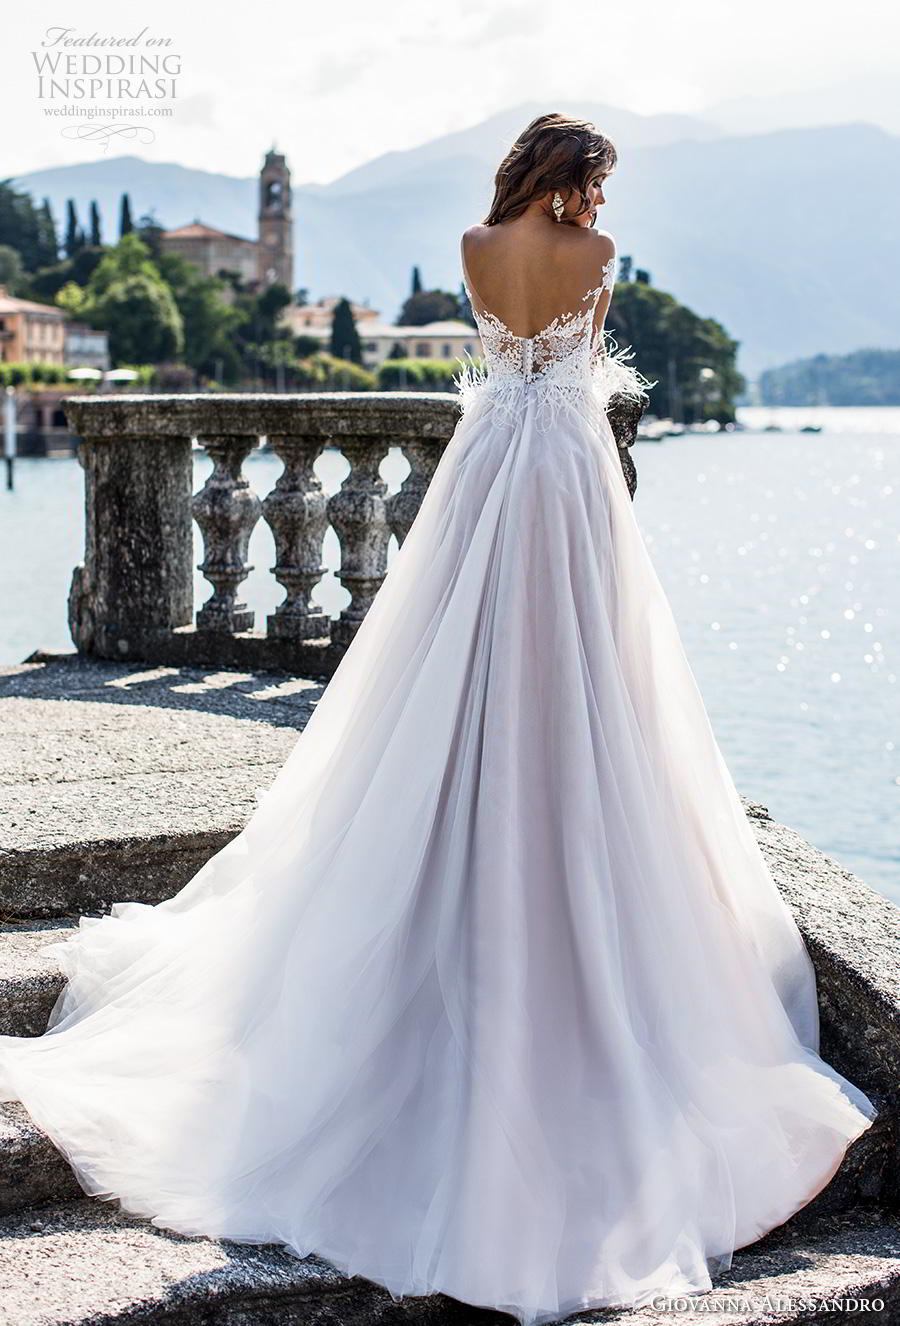 giovanna alessandro 2019 bridal long sleeves off the shoulder sweetheart neckline heavily embellished bodice romantic a  line wedding dress mid back chapel train (1) bv